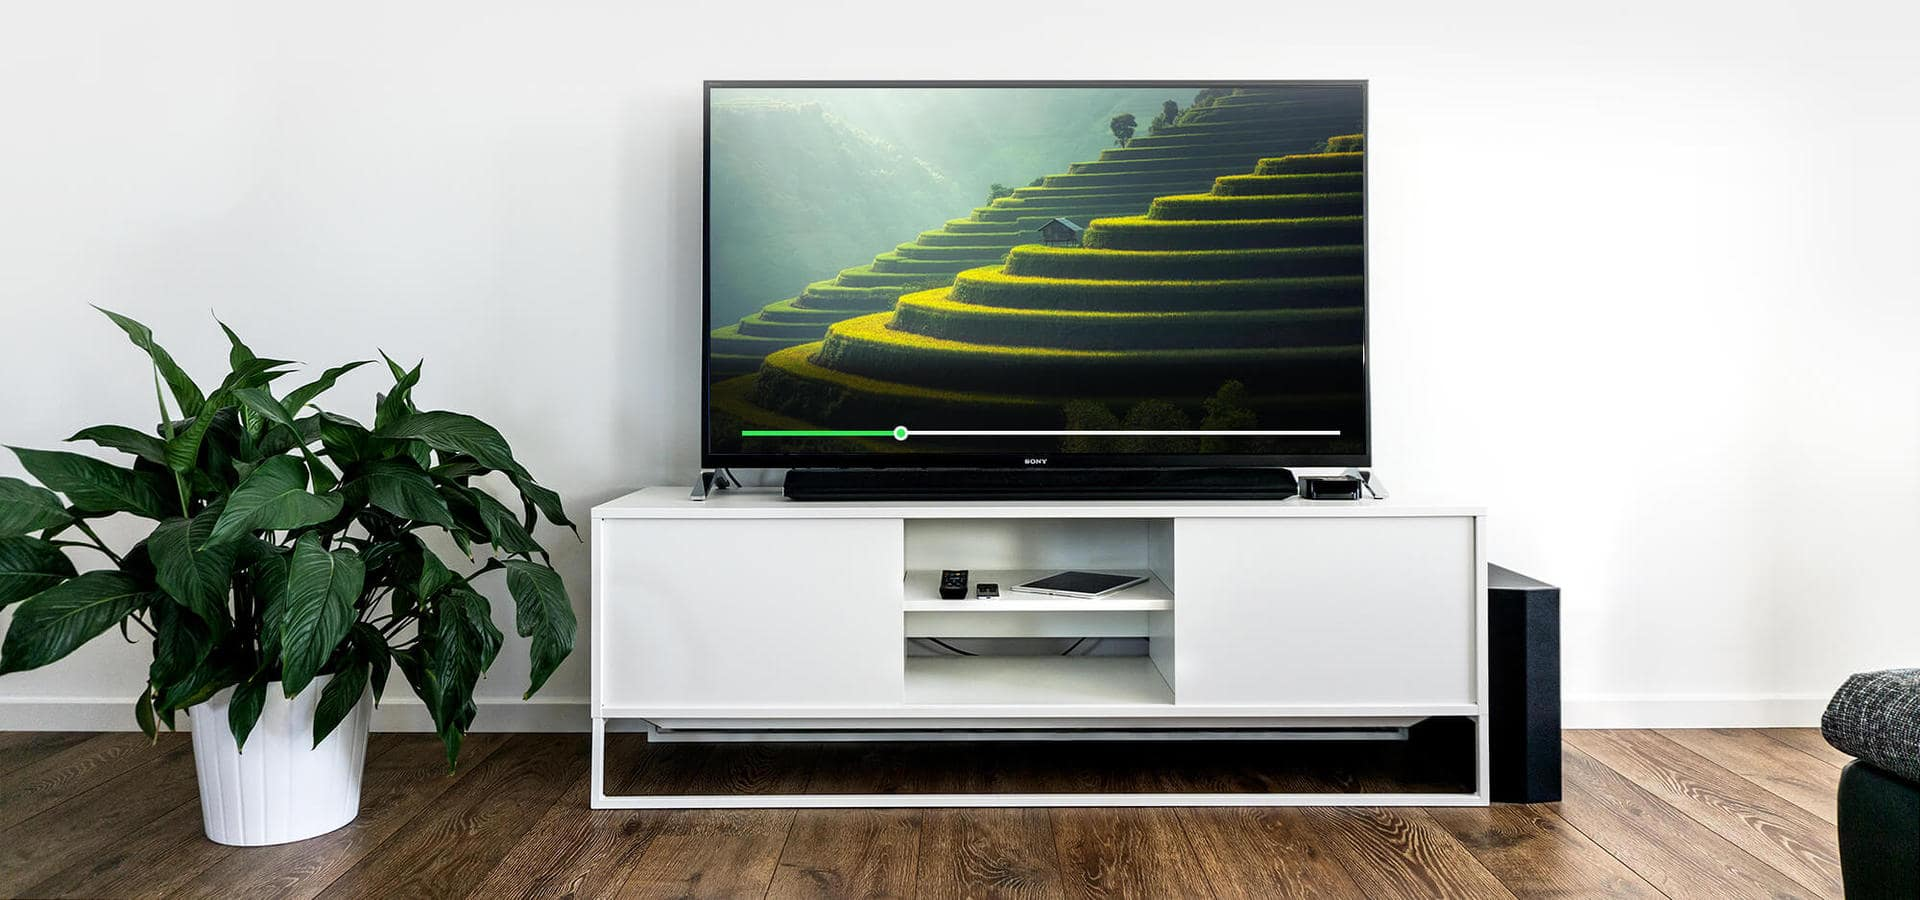 hight resolution of need help installing a new tv or sound system